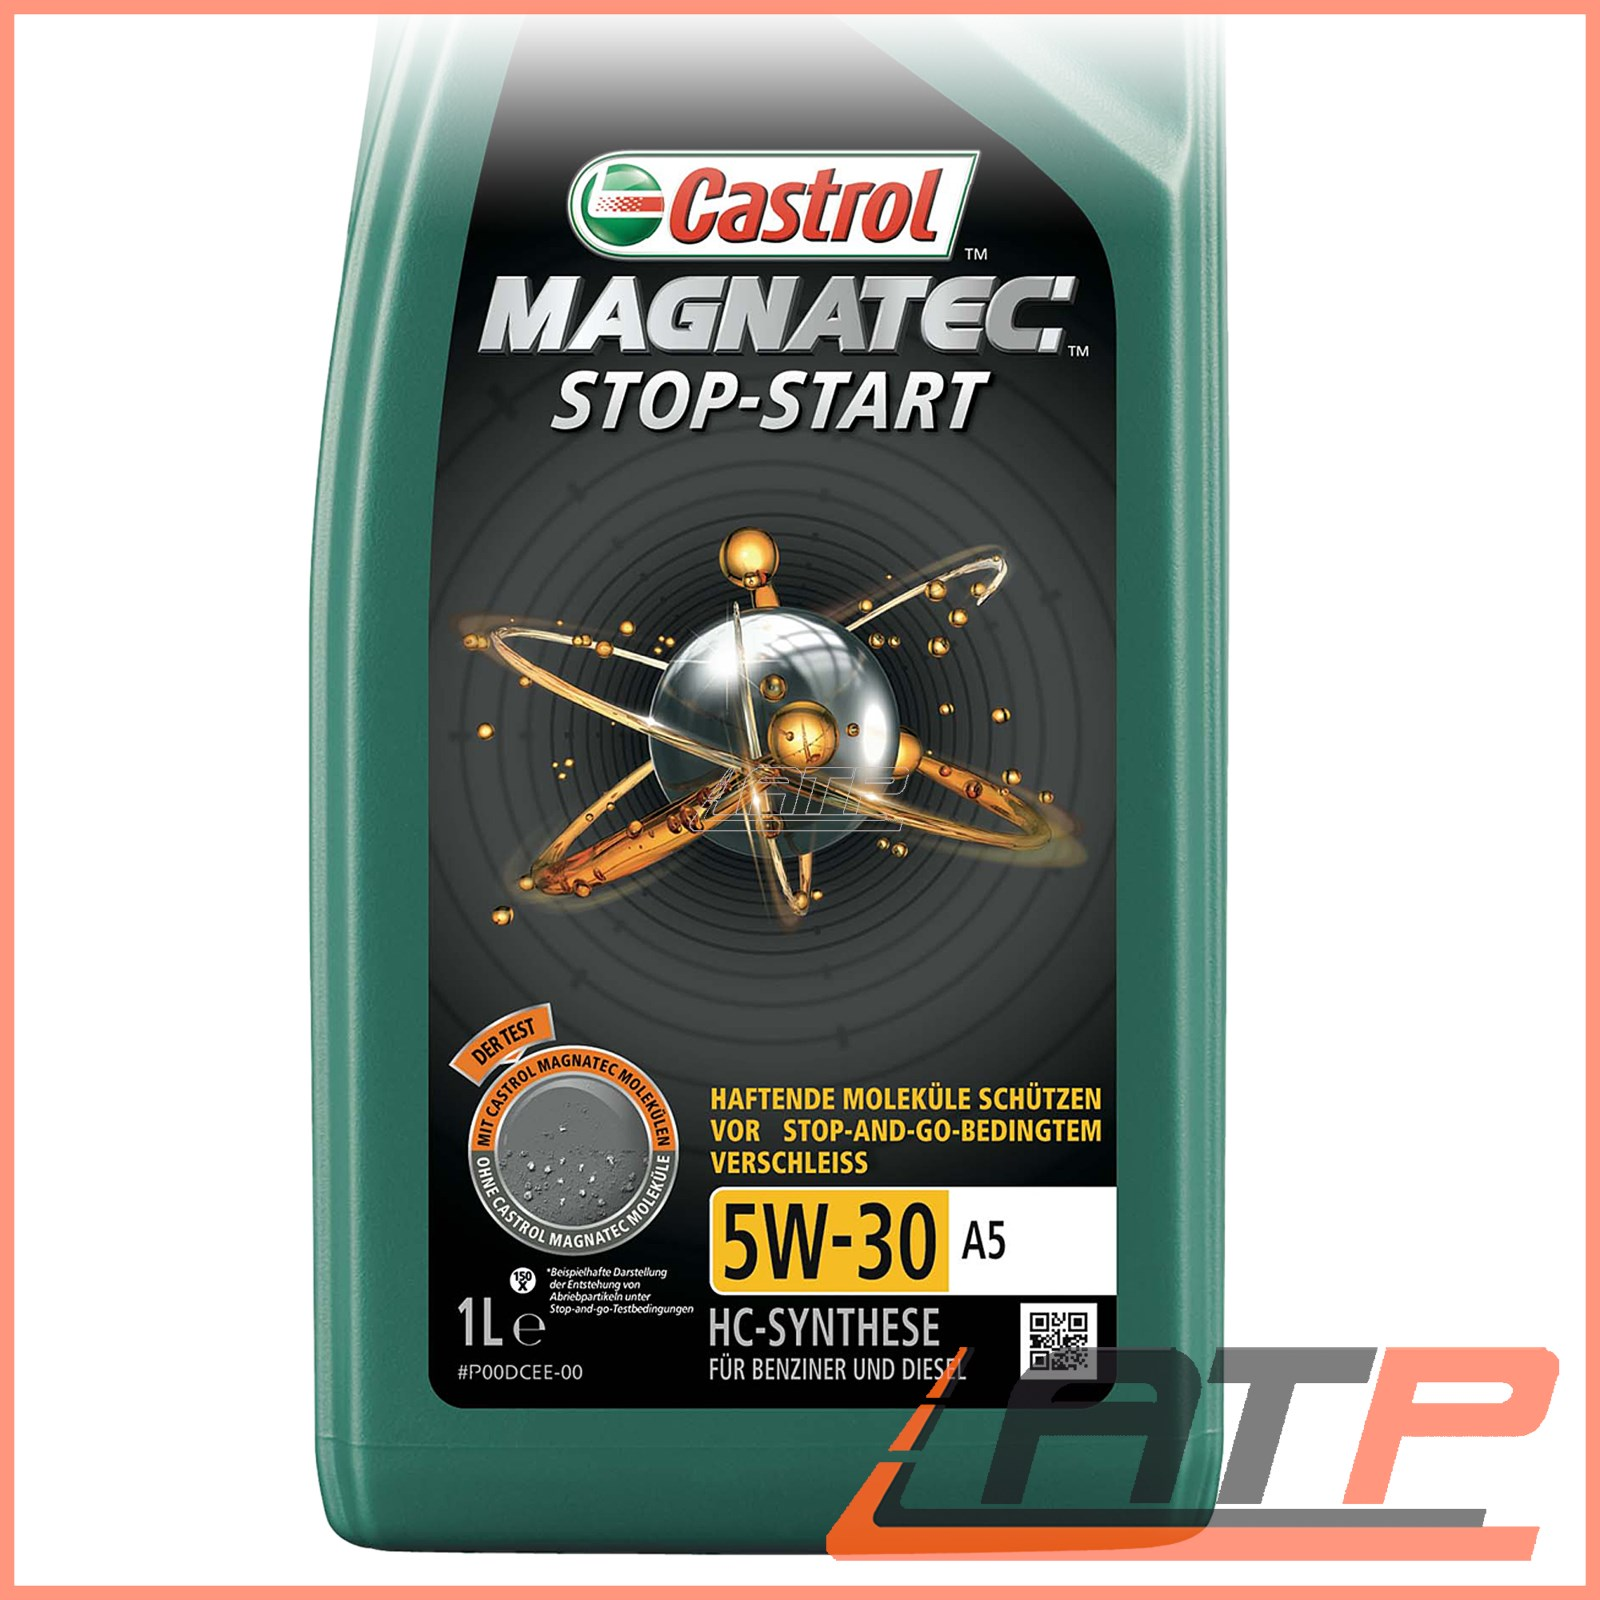 12x 1l castrol magnatec stop start 5w 30 a5 engine oil. Black Bedroom Furniture Sets. Home Design Ideas